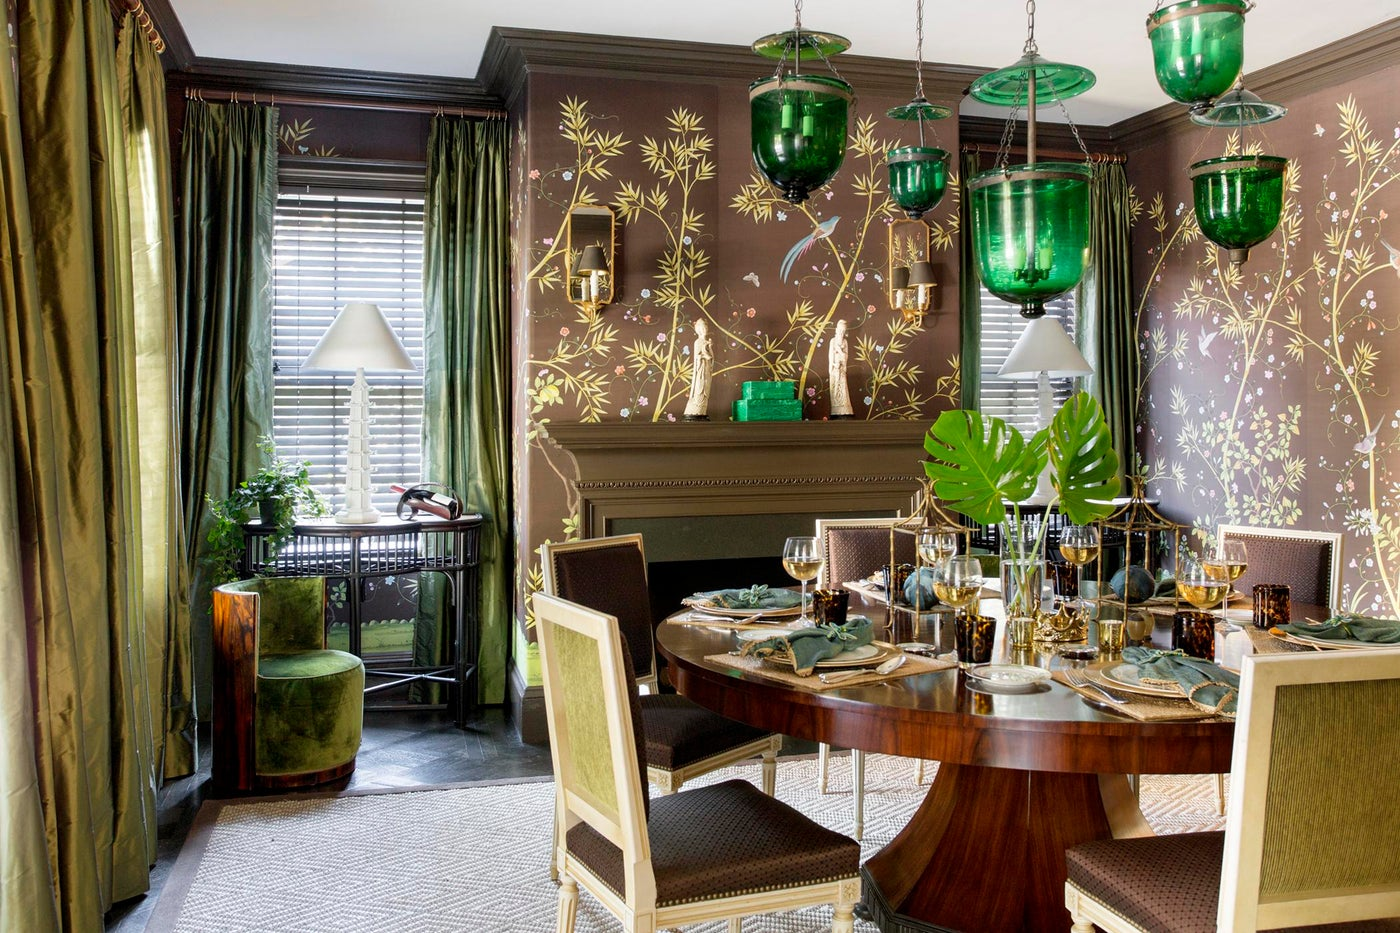 Chinoiserie Dining Room with Macassar Ebony Table and Empoli Glass Lights